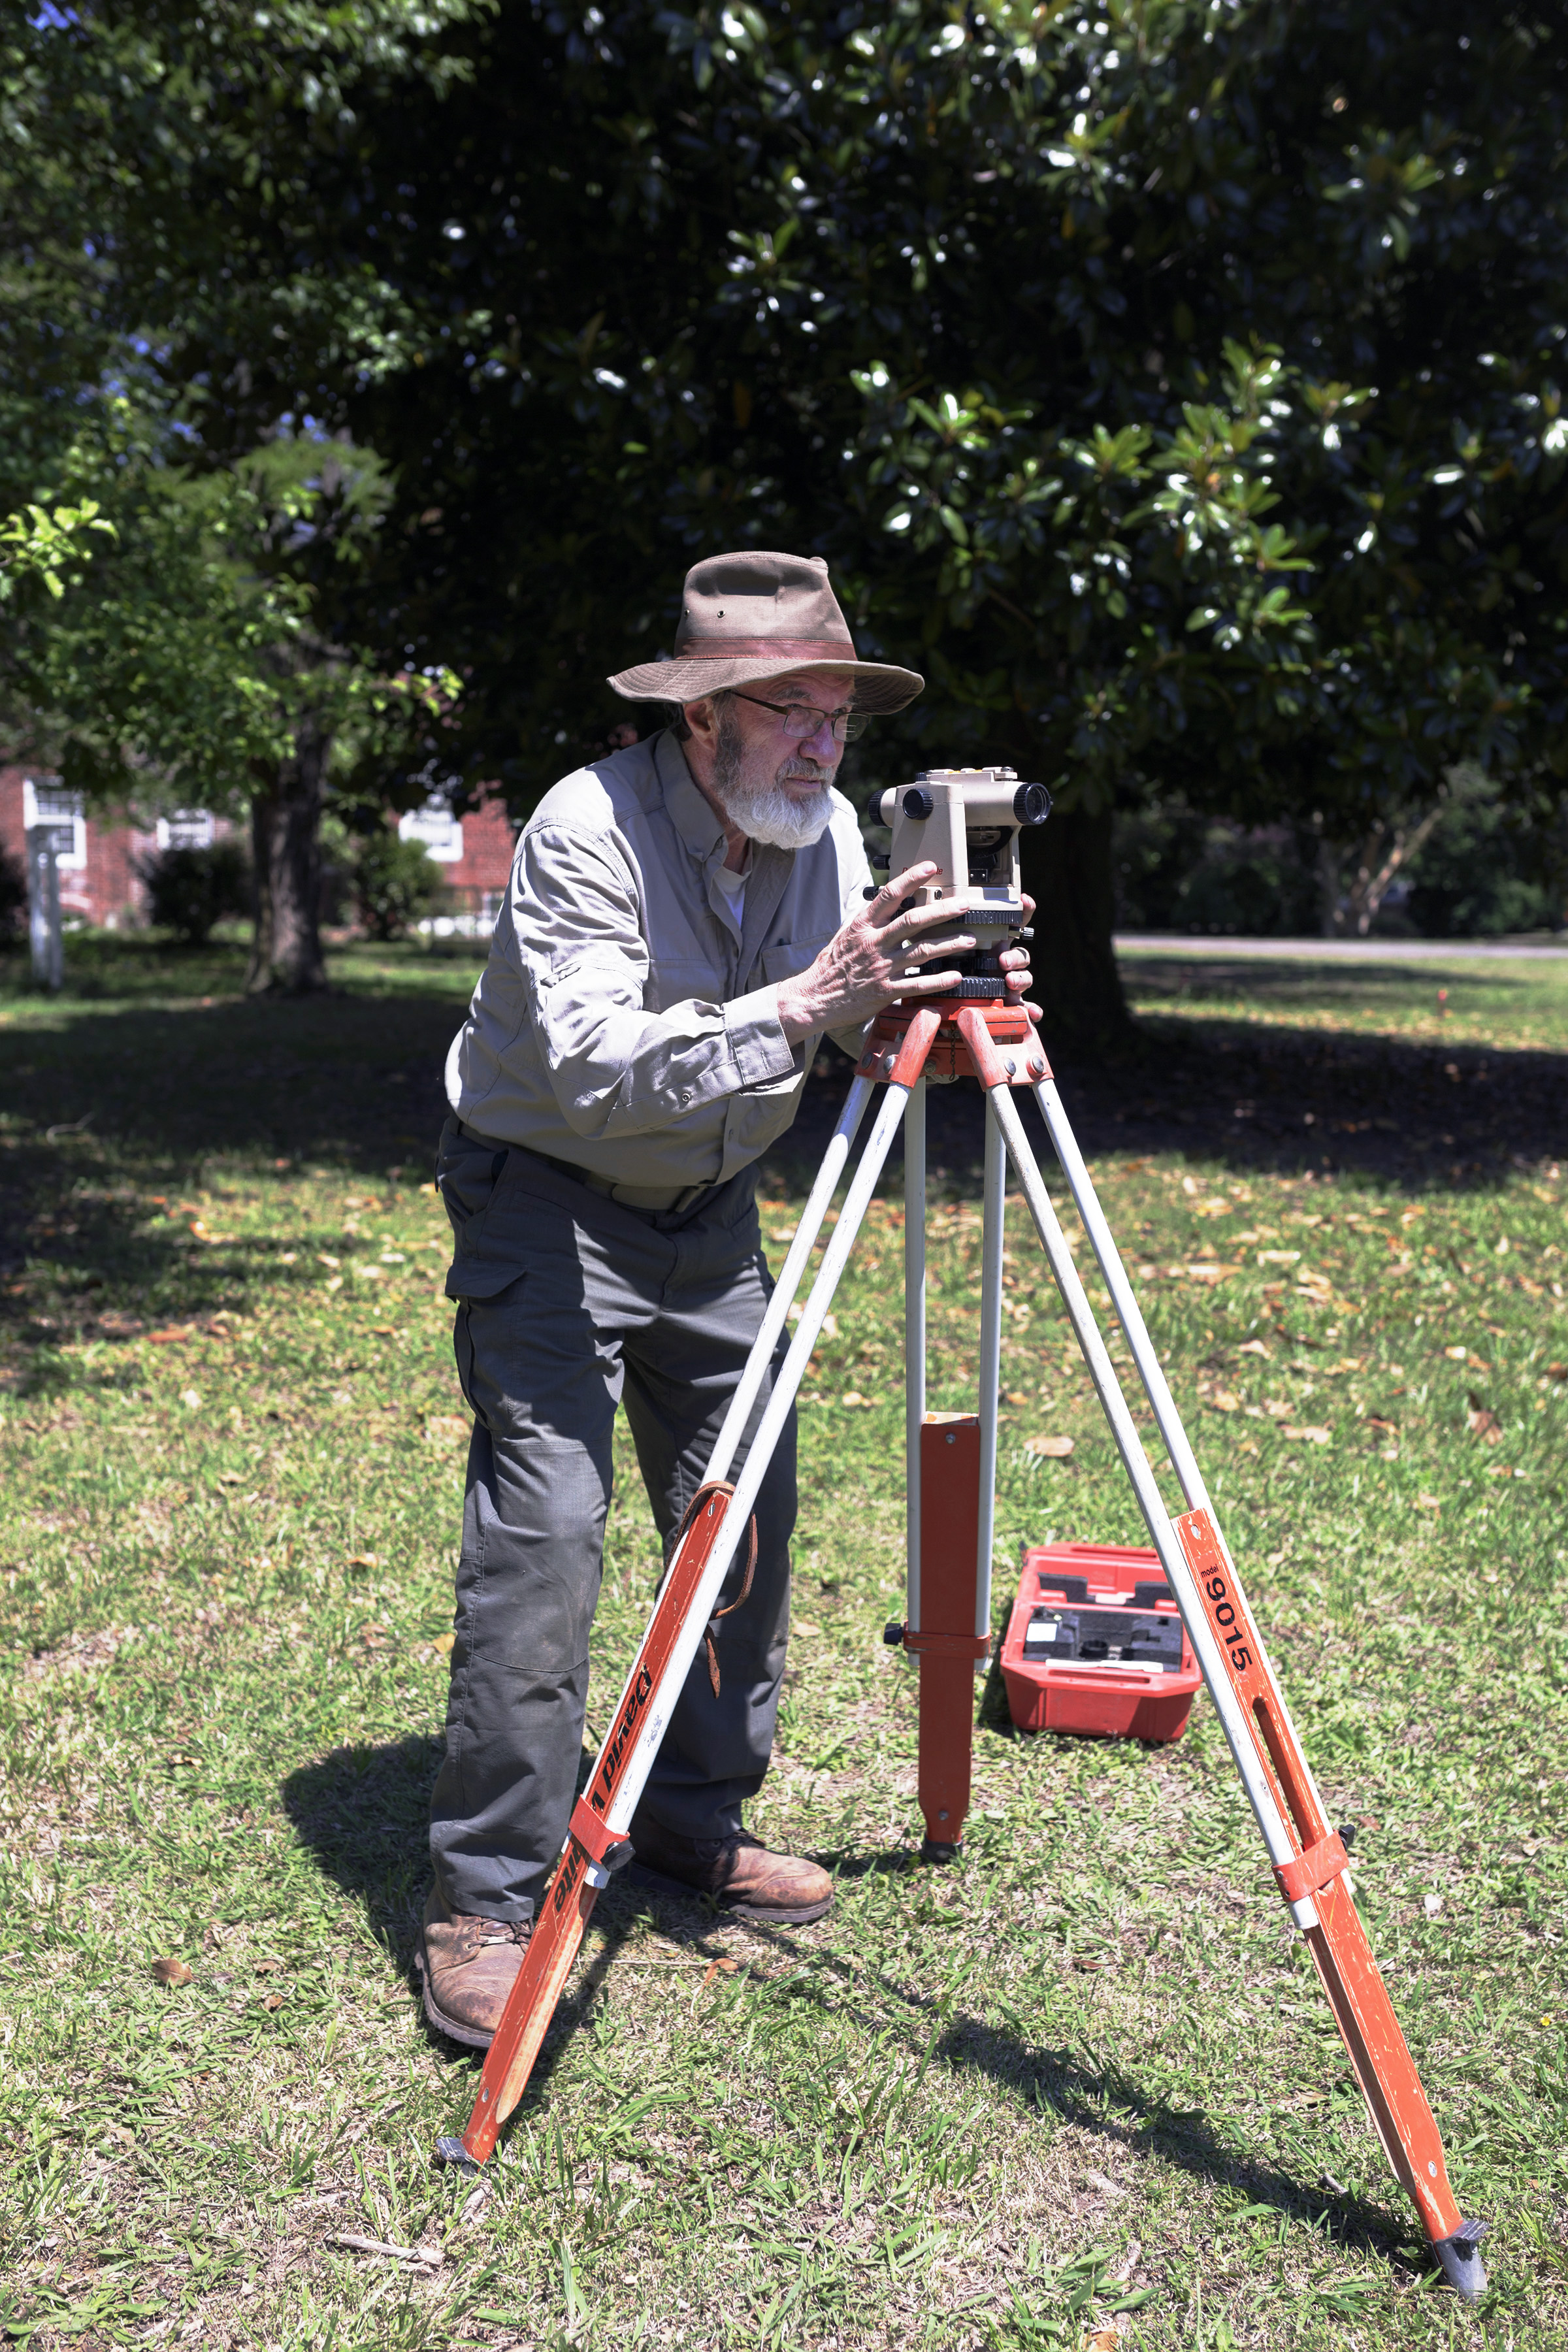 Len Blasiol measures for a level digging site at an archeological dig taking place on the Eyreville Plantation grounds near Cape Charles, Virginia.